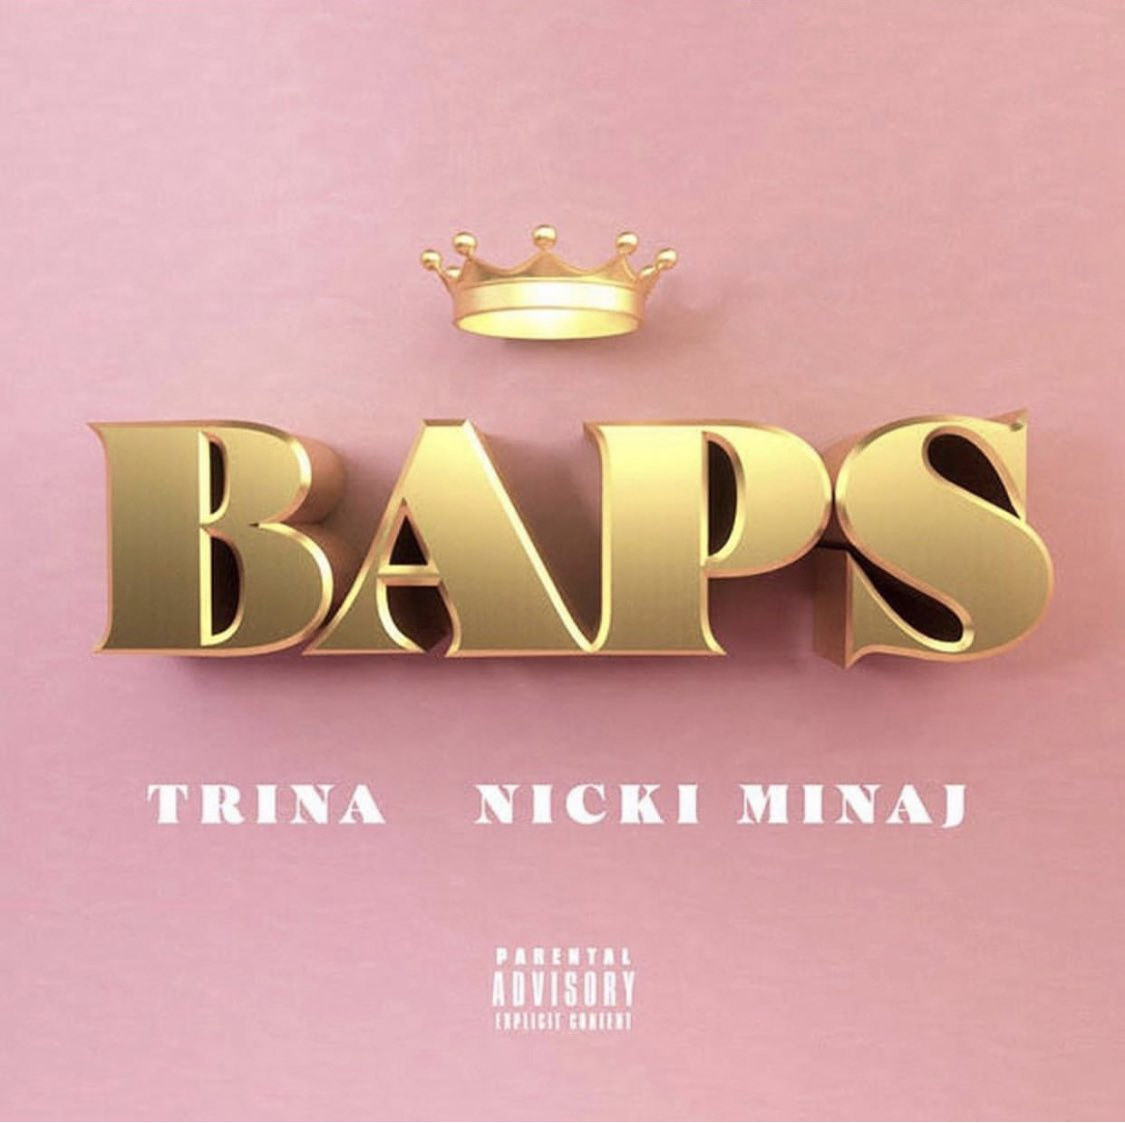 @TRINArockstarr's photo on #BAPS